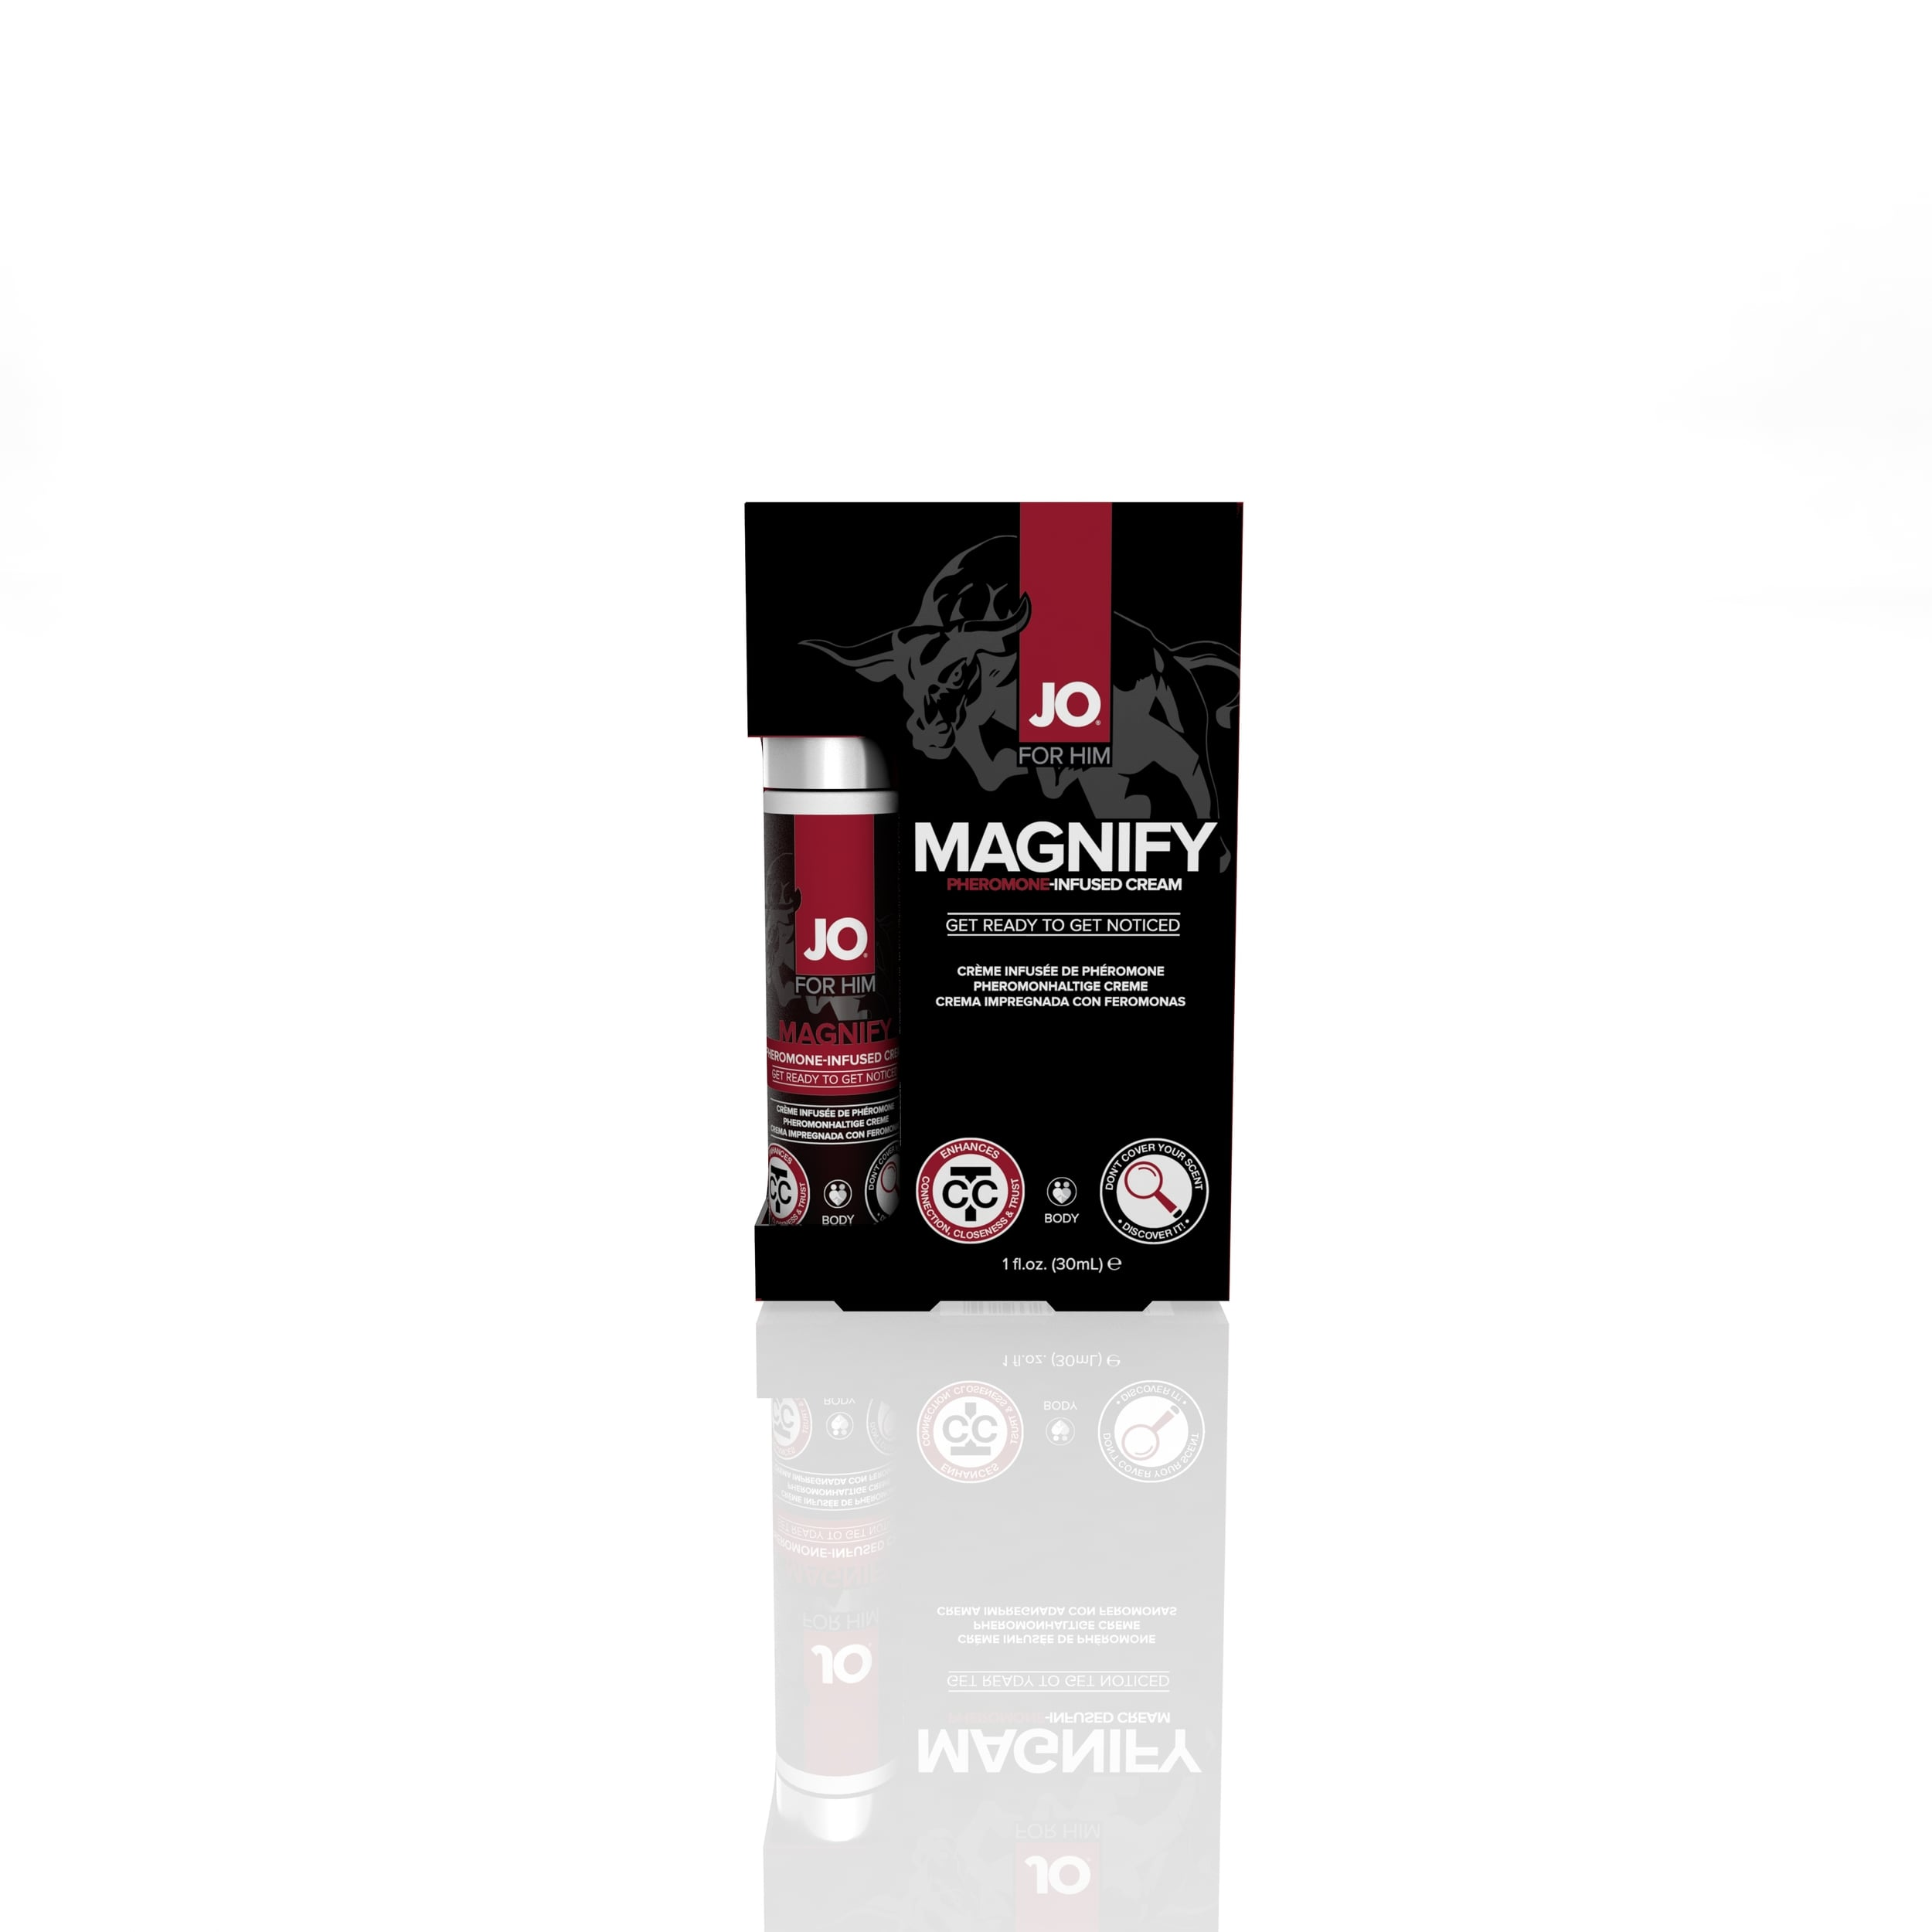 40187 - JO MAGNIFY - PHEROMONE INFUSED ATTRACTANT CREAM - FOR HIM - 1fl.oz30mL.jpg